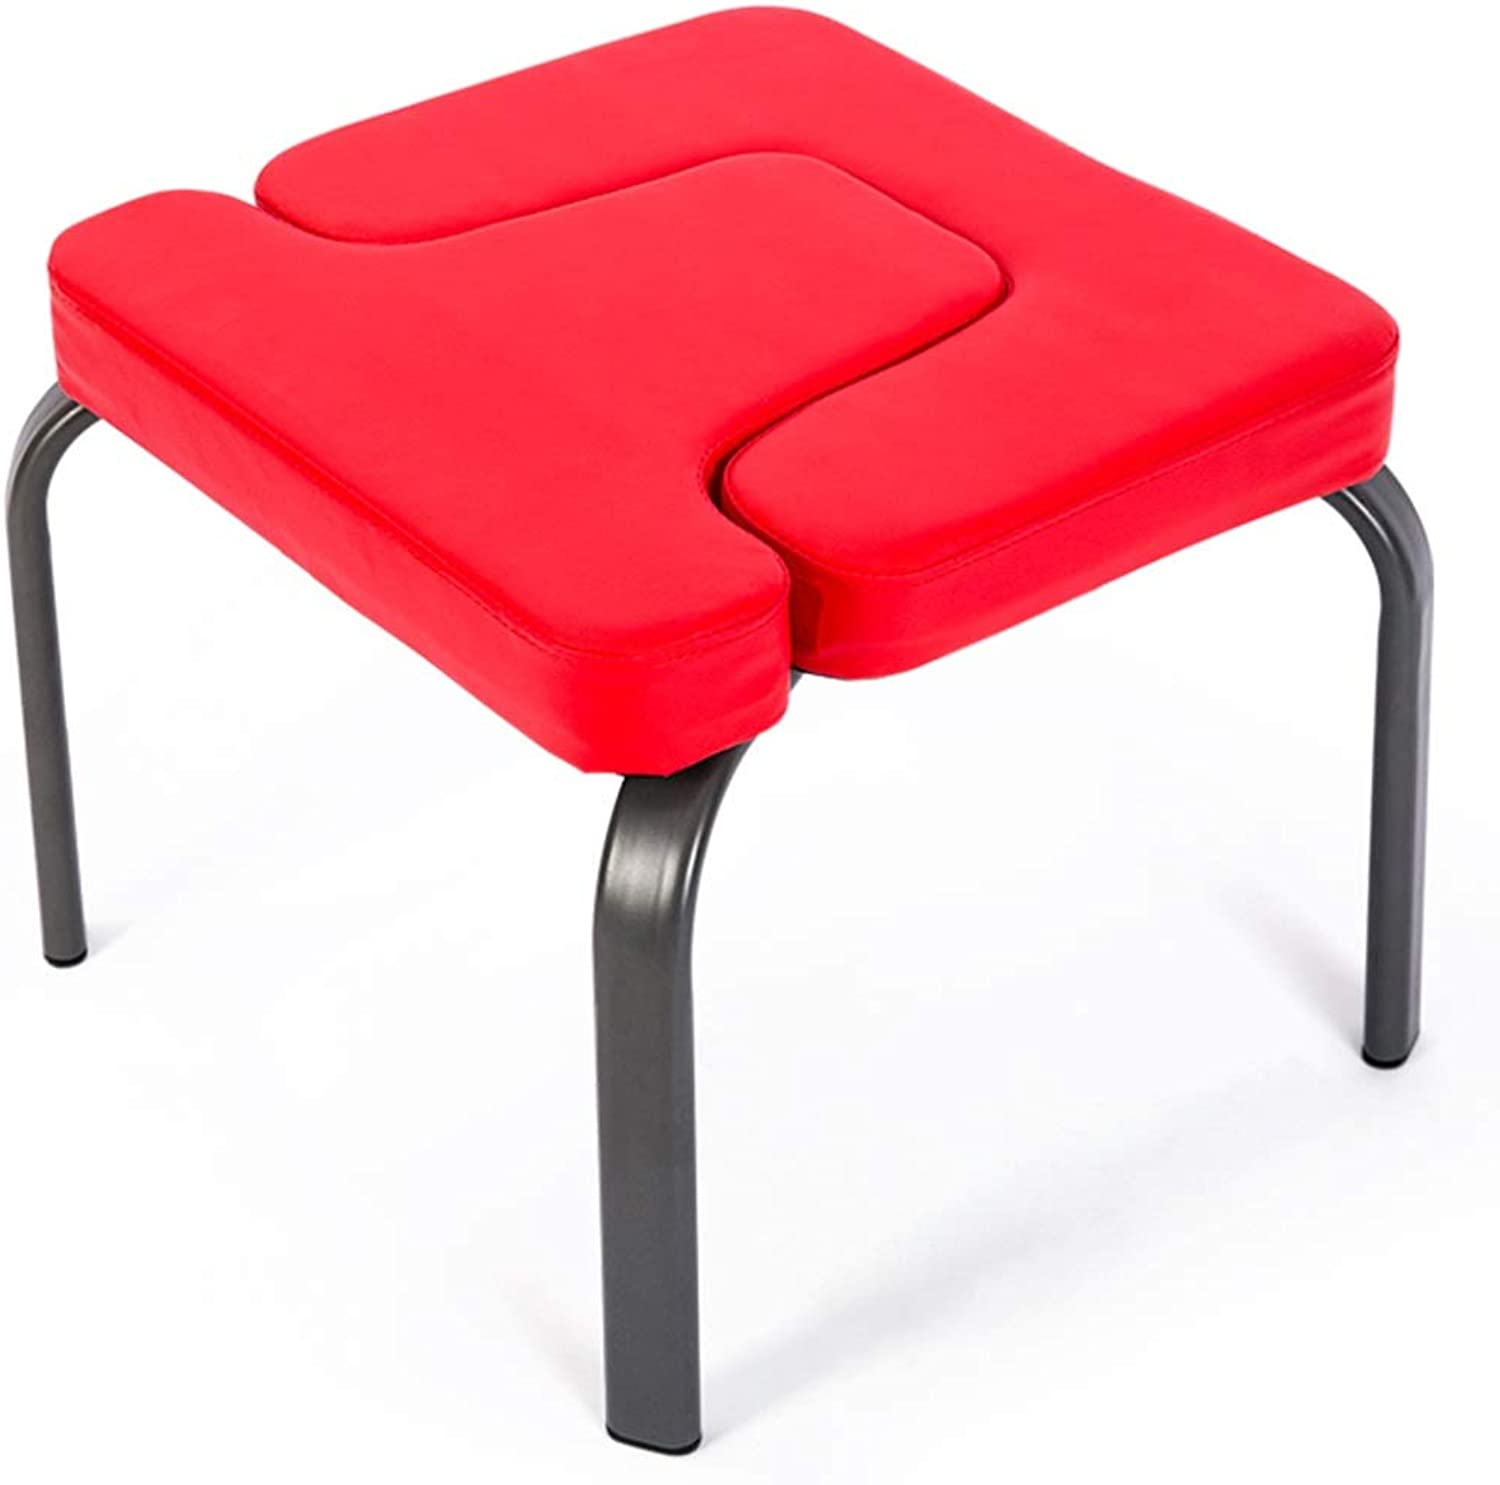 Upholstered Yoga Headstand Bench Leather Seat, Stainless Steel Stand Yoga Chair for Home Gym, Portable Body Exercise Stool, 440 Lbs Capacity, Red (color   Red)